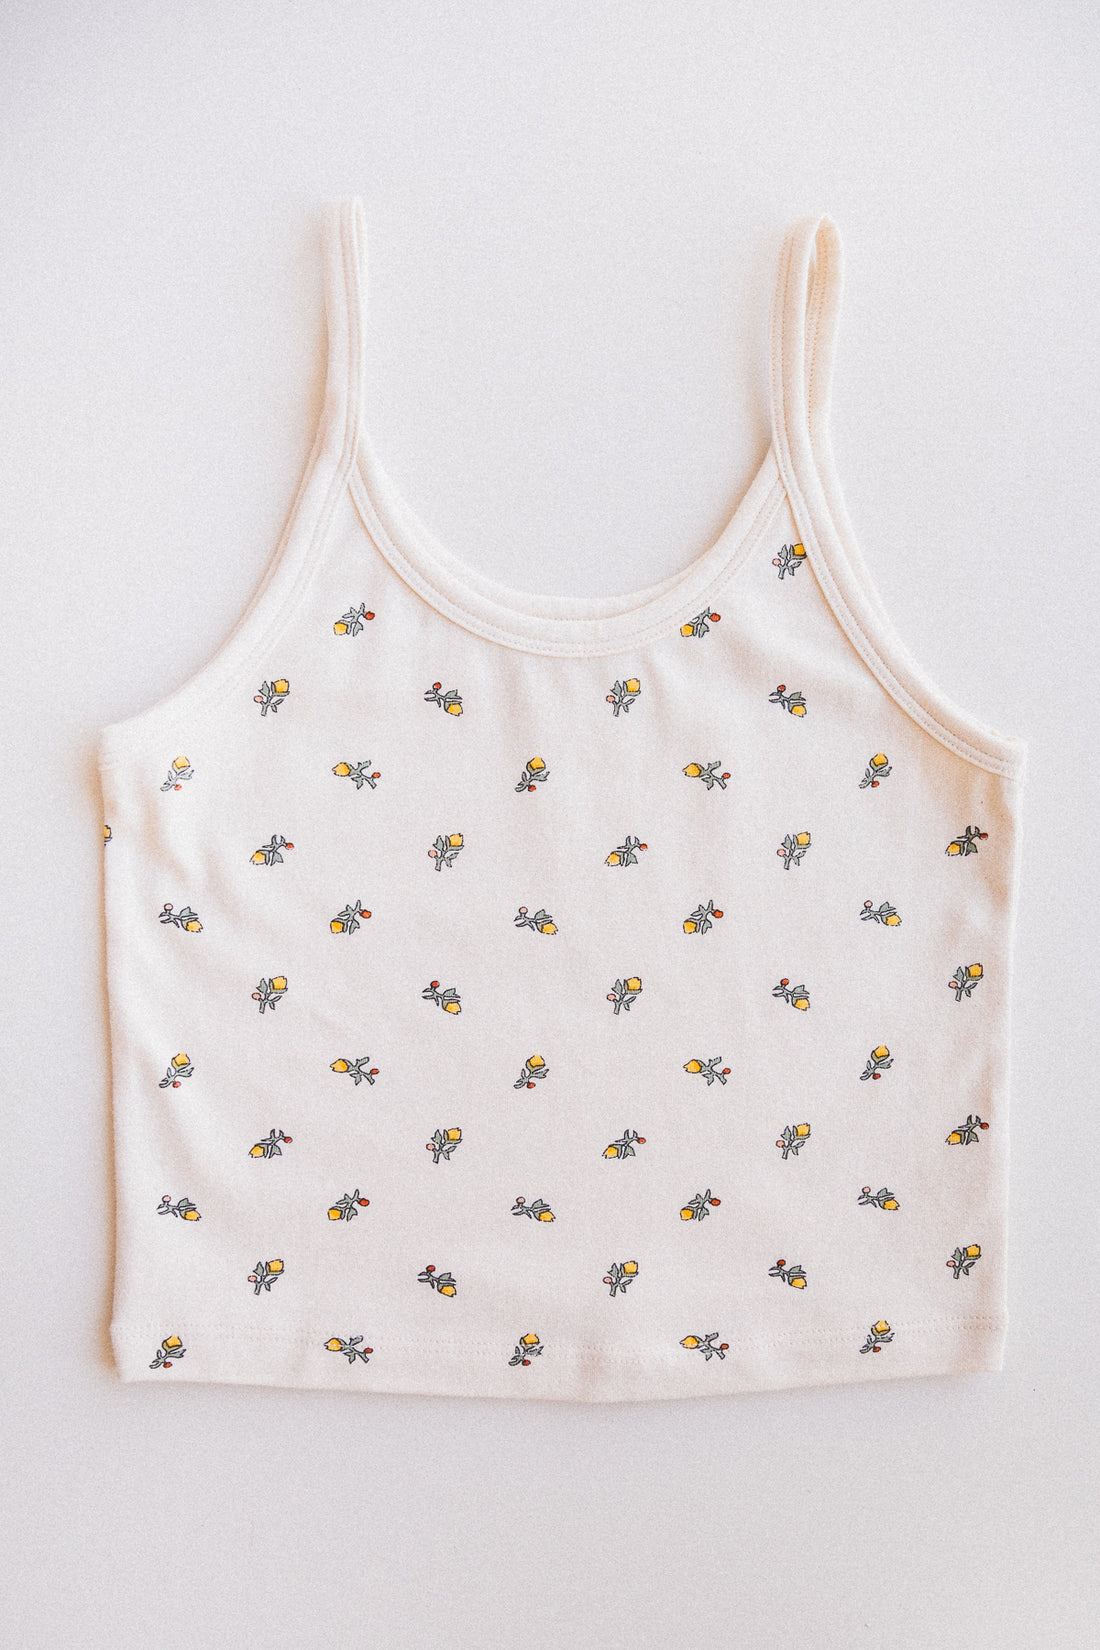 CROP TANK IN YELLOW CALICO